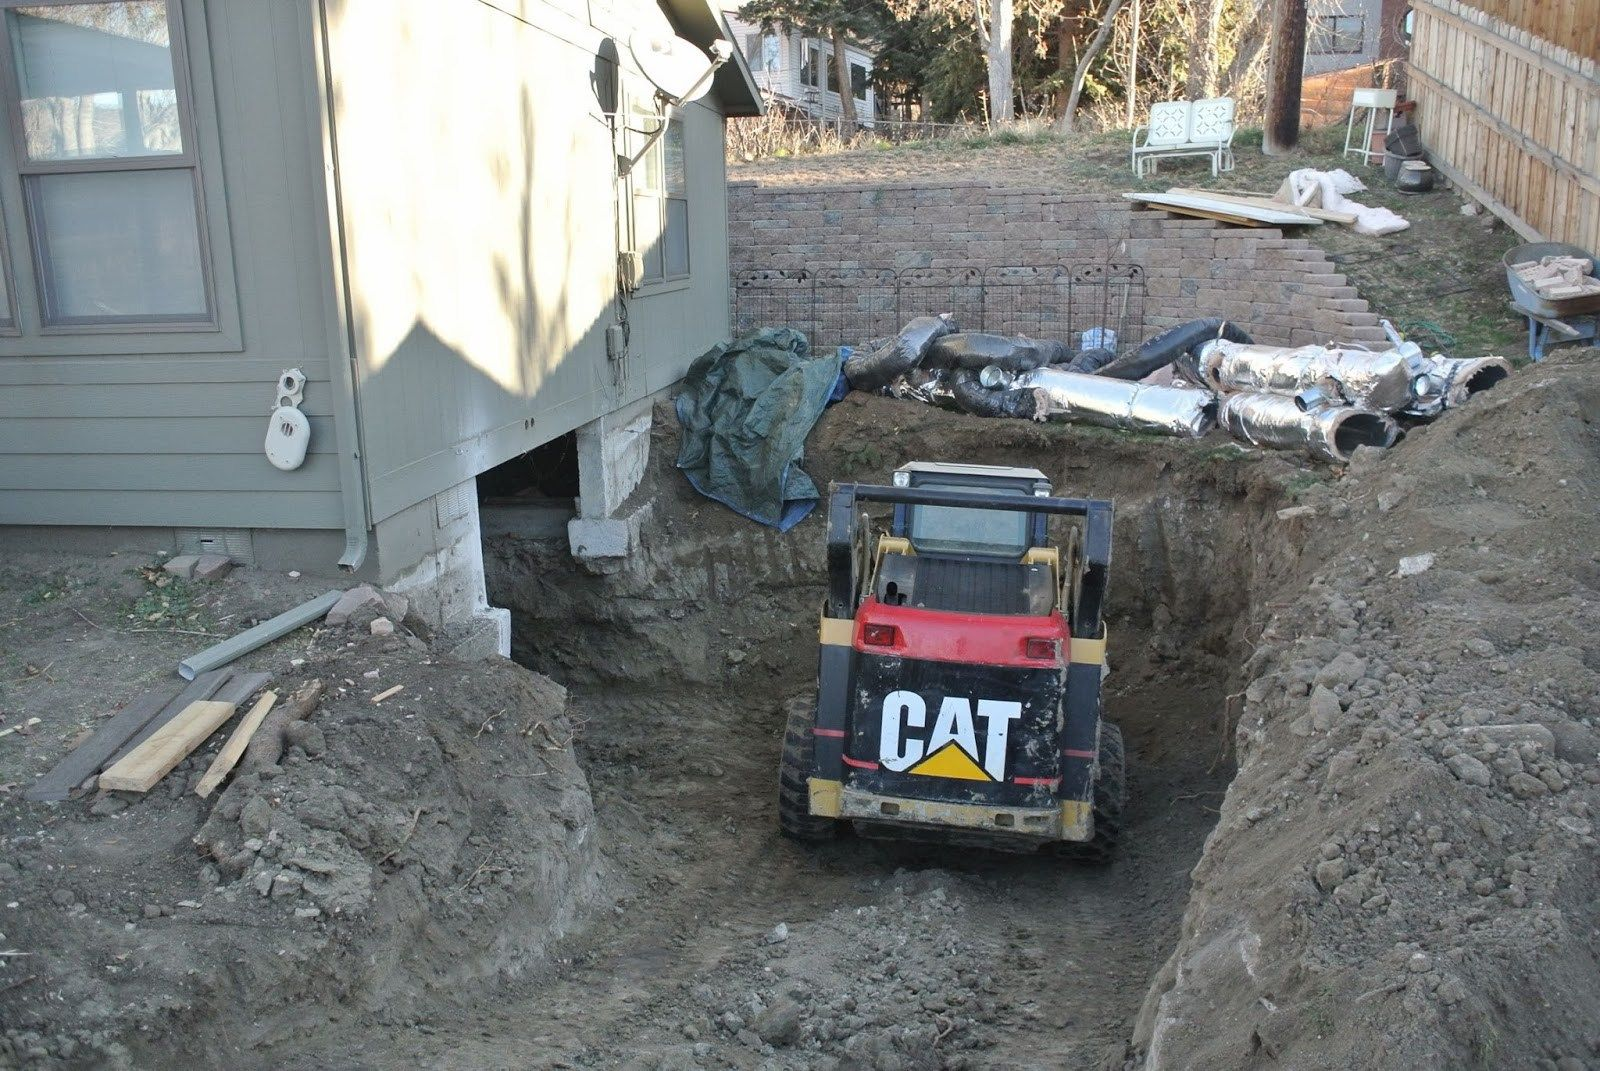 Sunday Reminiscences Footers Floor Crawl Space To Basement In Basement  Crawl Space | Home Decor | Pinterest | Crawl Spaces, Basements And Spaces.